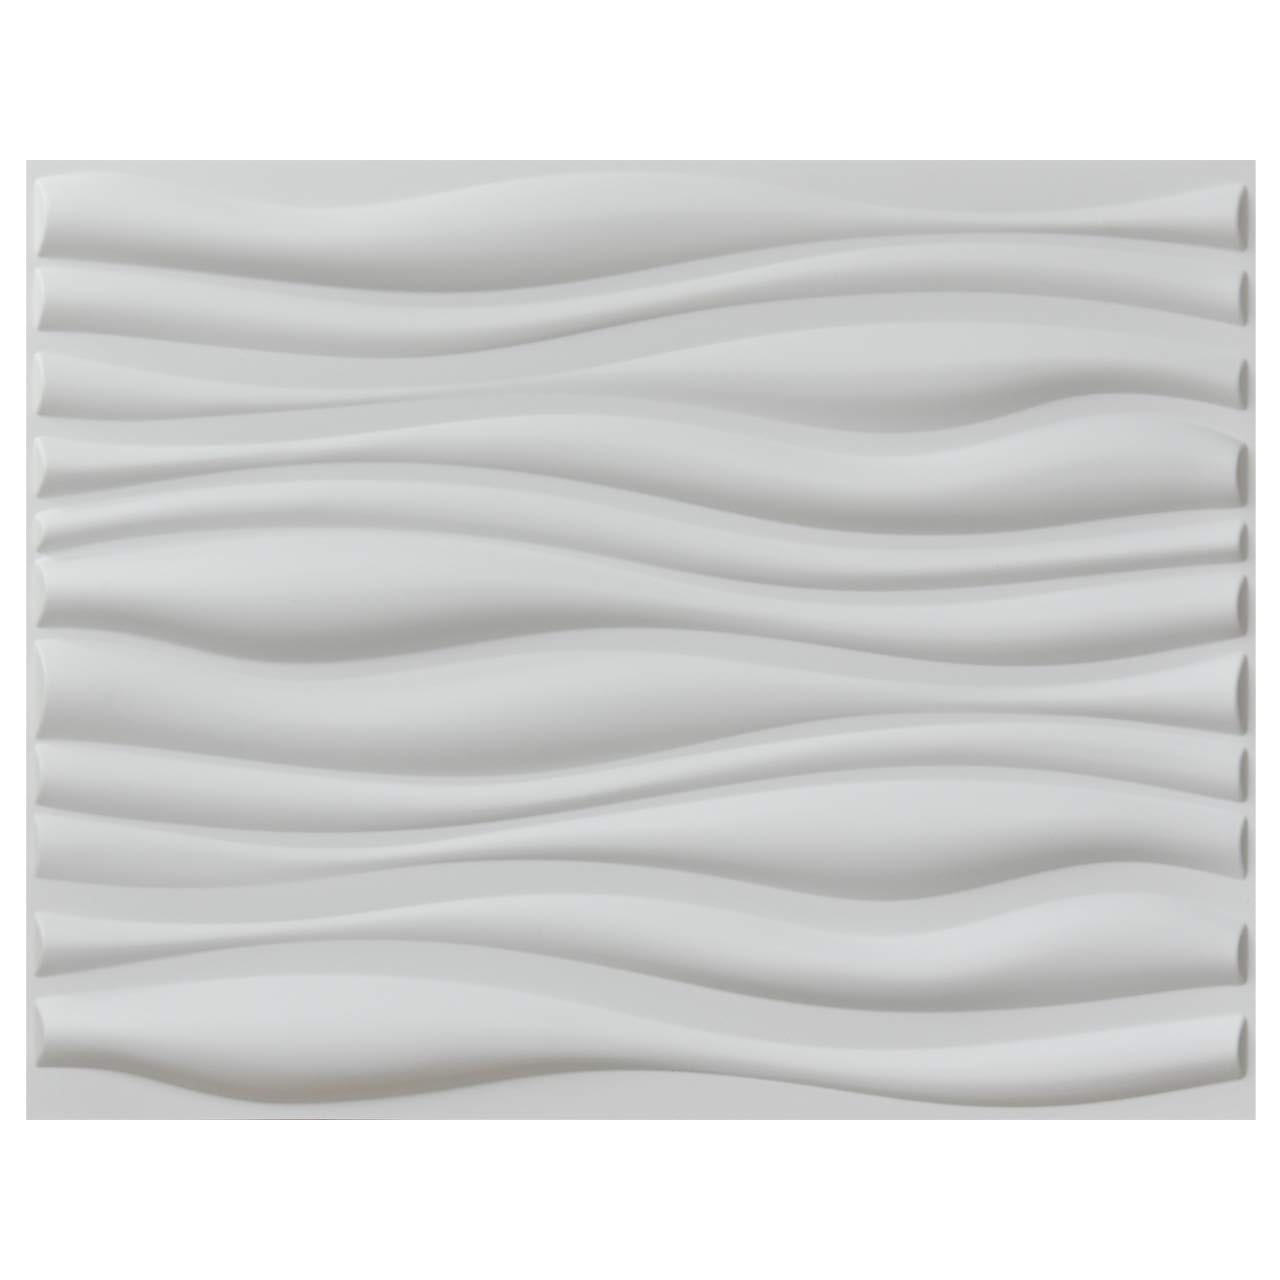 Art3d Decorative 3D Wall Panels Big Wave Deisgn, 31.5''x24.6'' Matt White (6 Pack) by Art3d